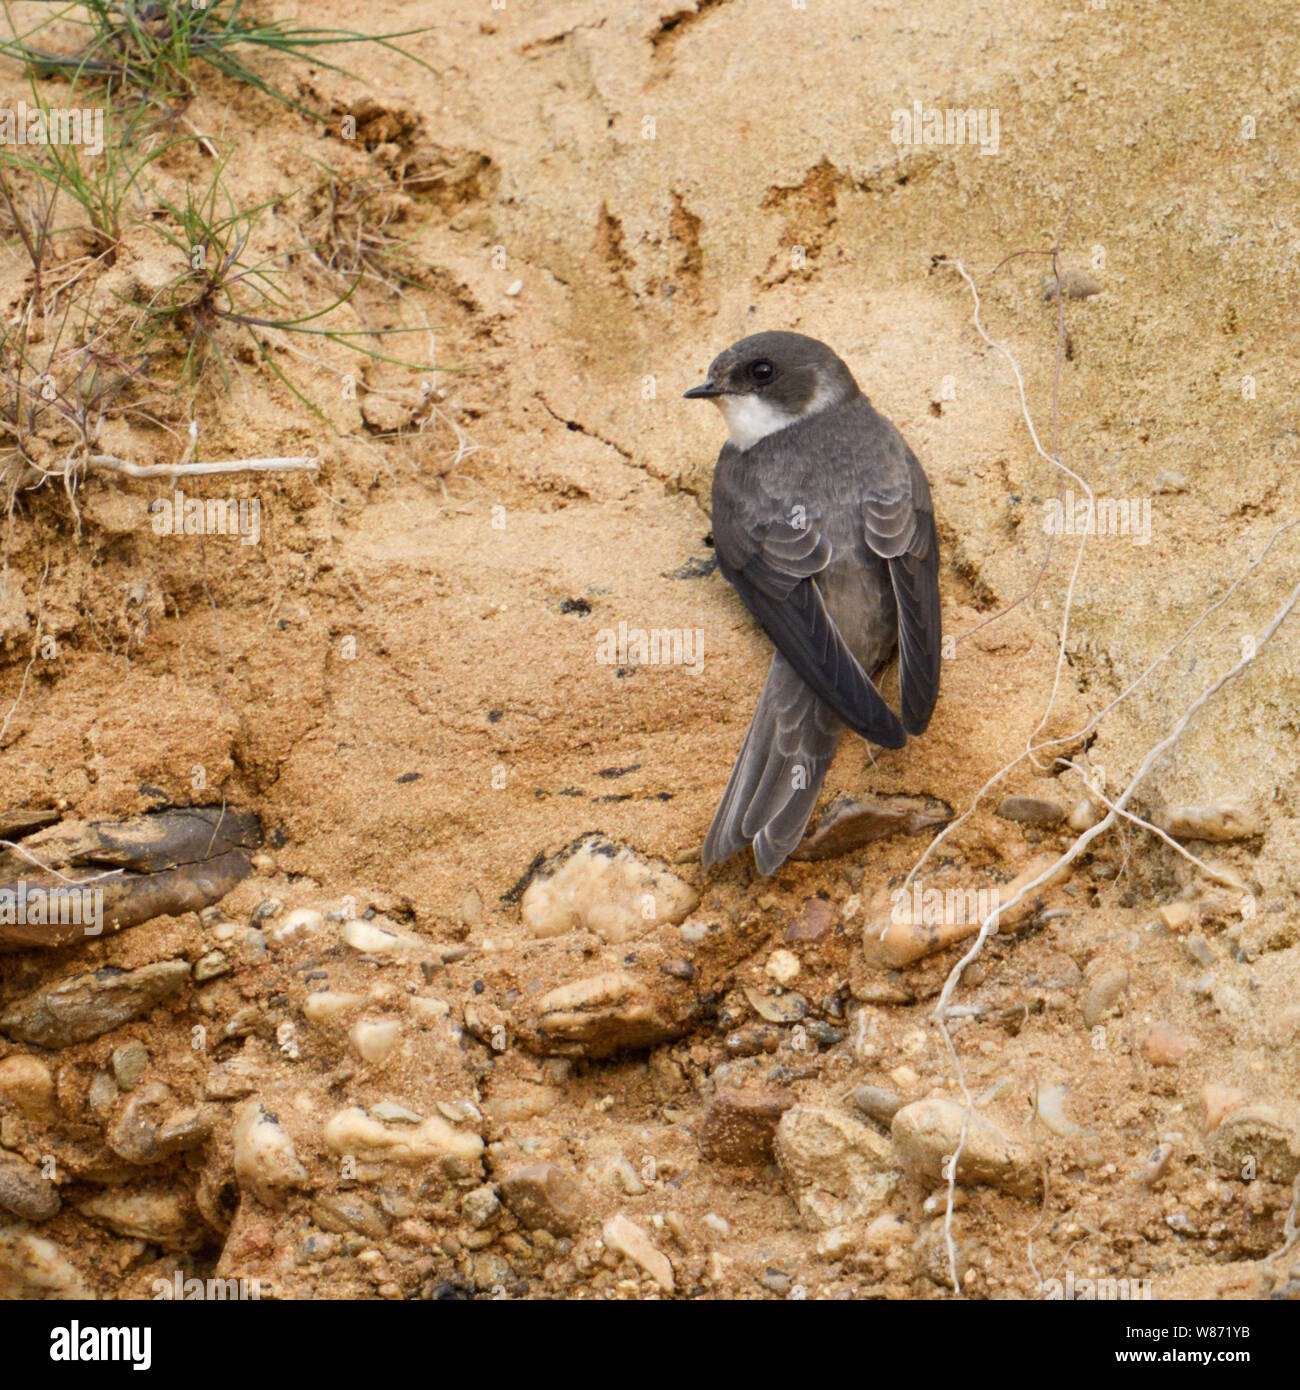 Sand Martin / Bank Swallow ( Riparia riparia) just arrived in itsbreeding territory, searching for a place to dig its nest hole, , wildlife, Europe. Stock Photo